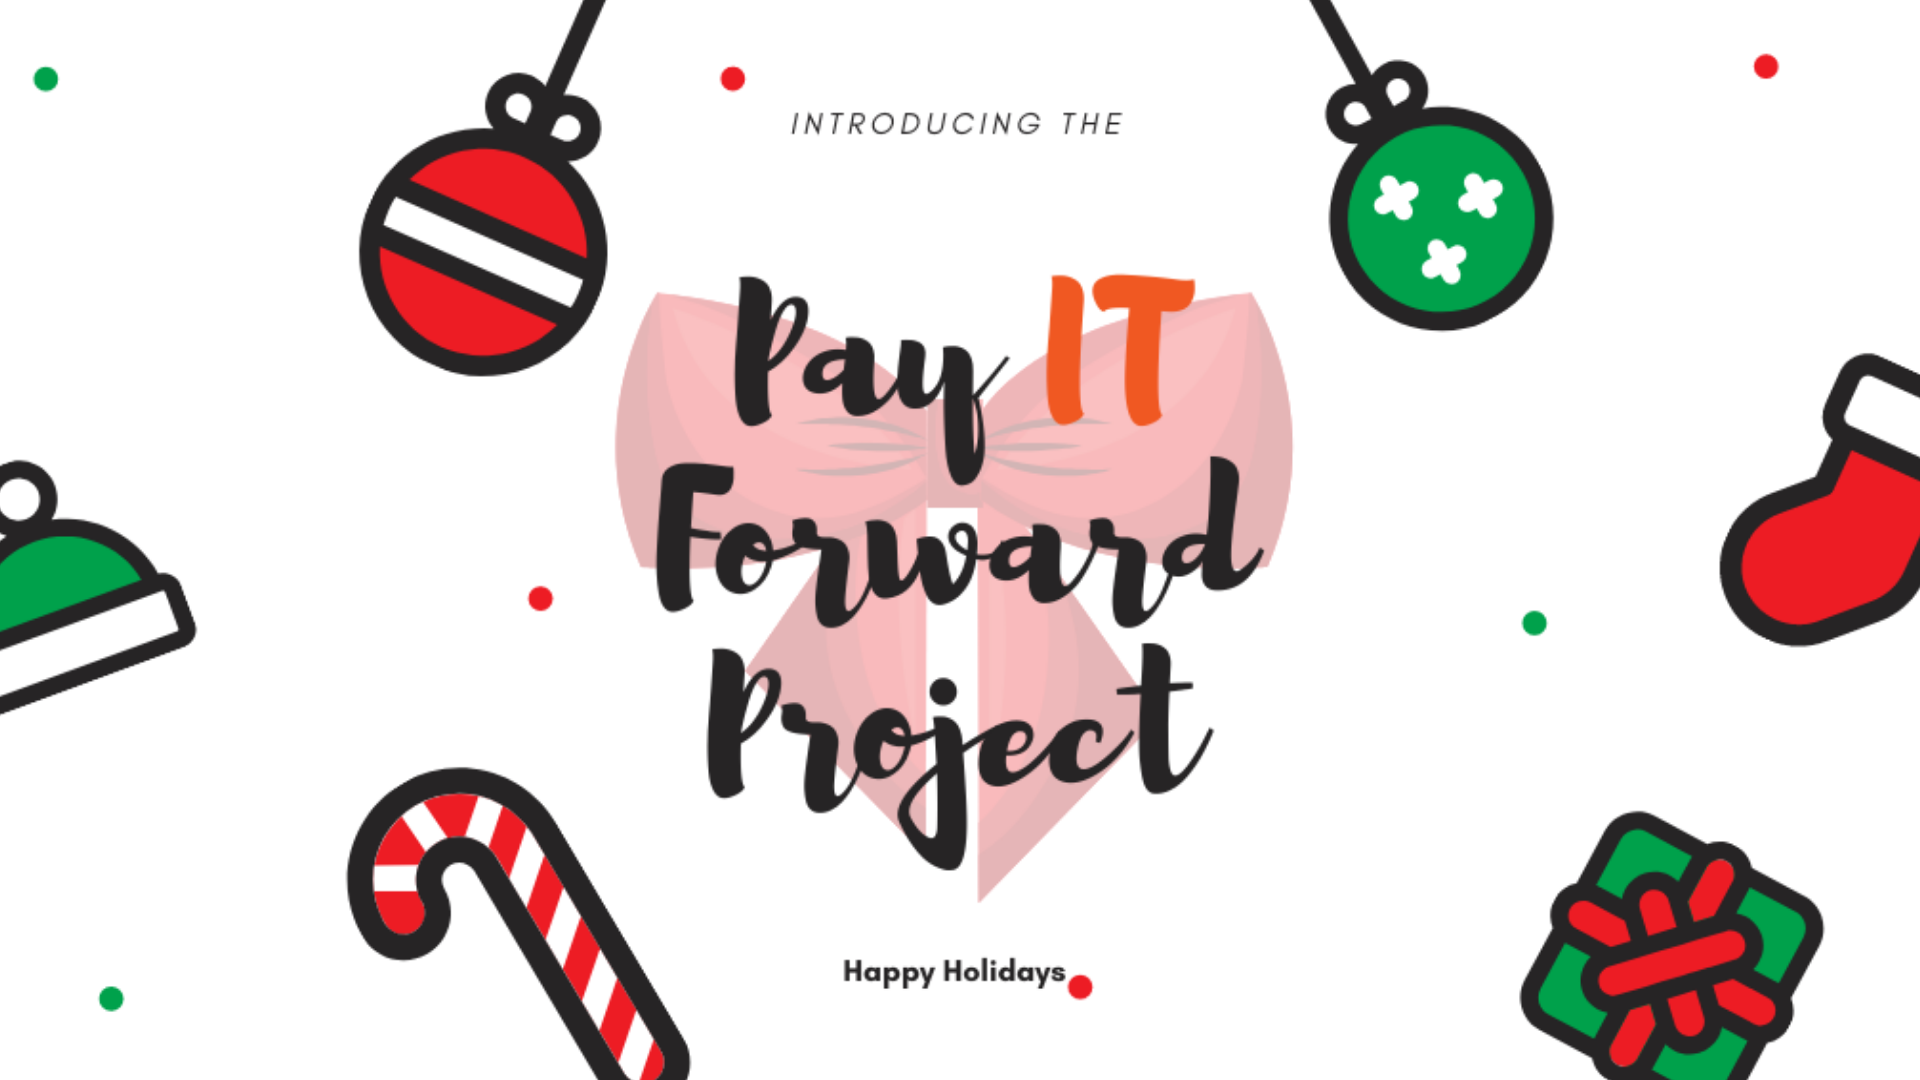 Pay IT Forward Recap